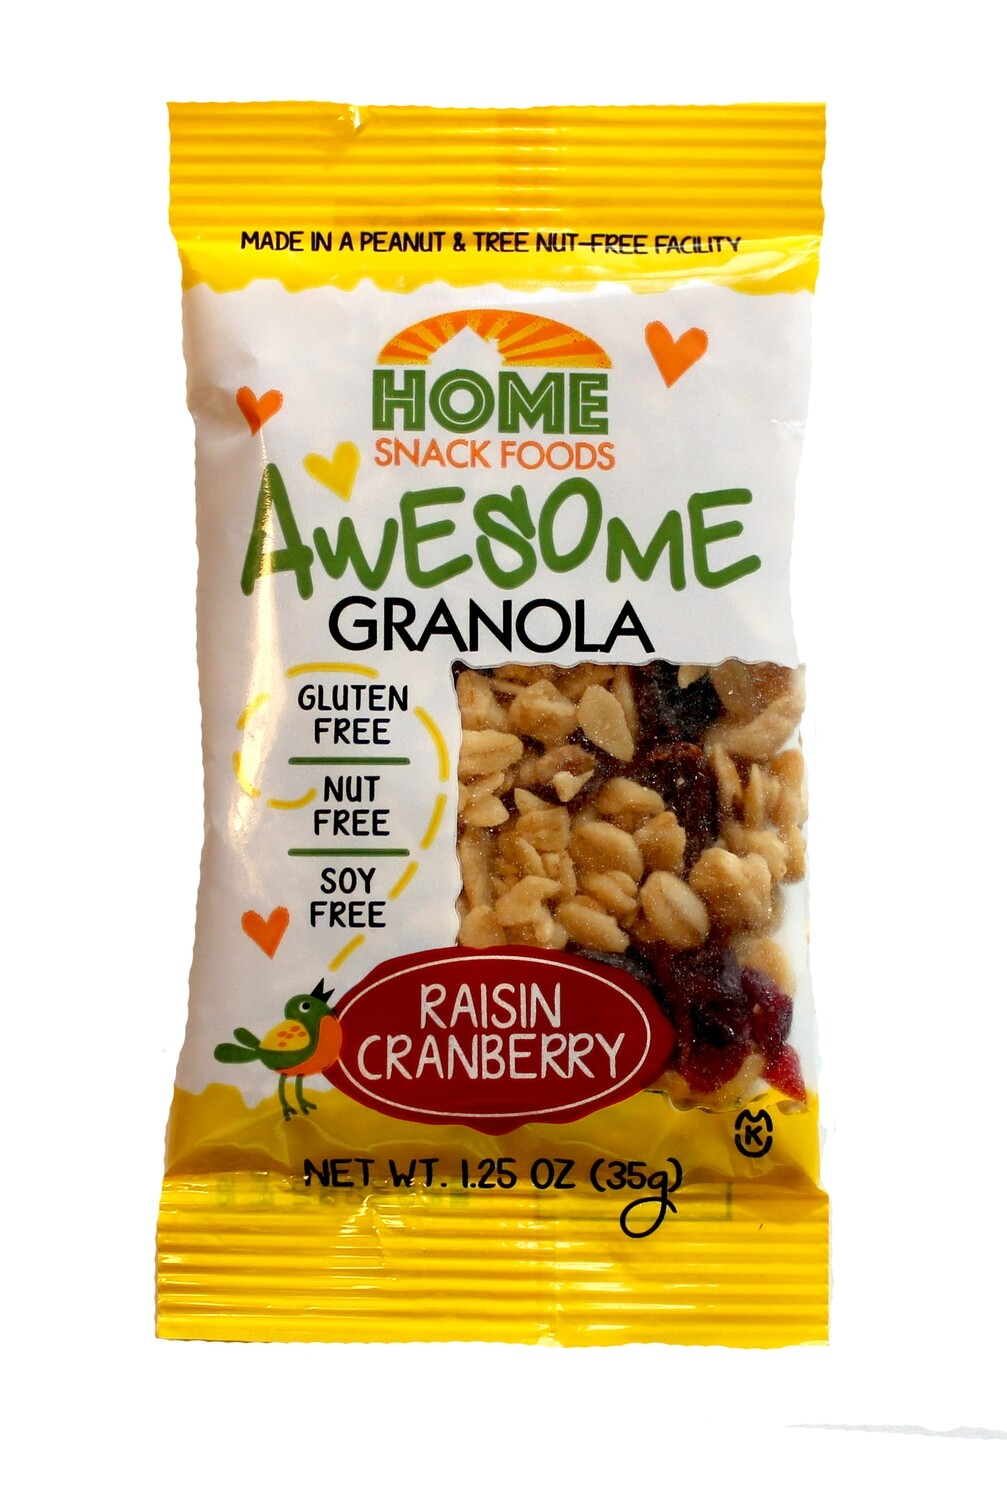 Awesome Granola - Raisin Cranberry 12 Pack